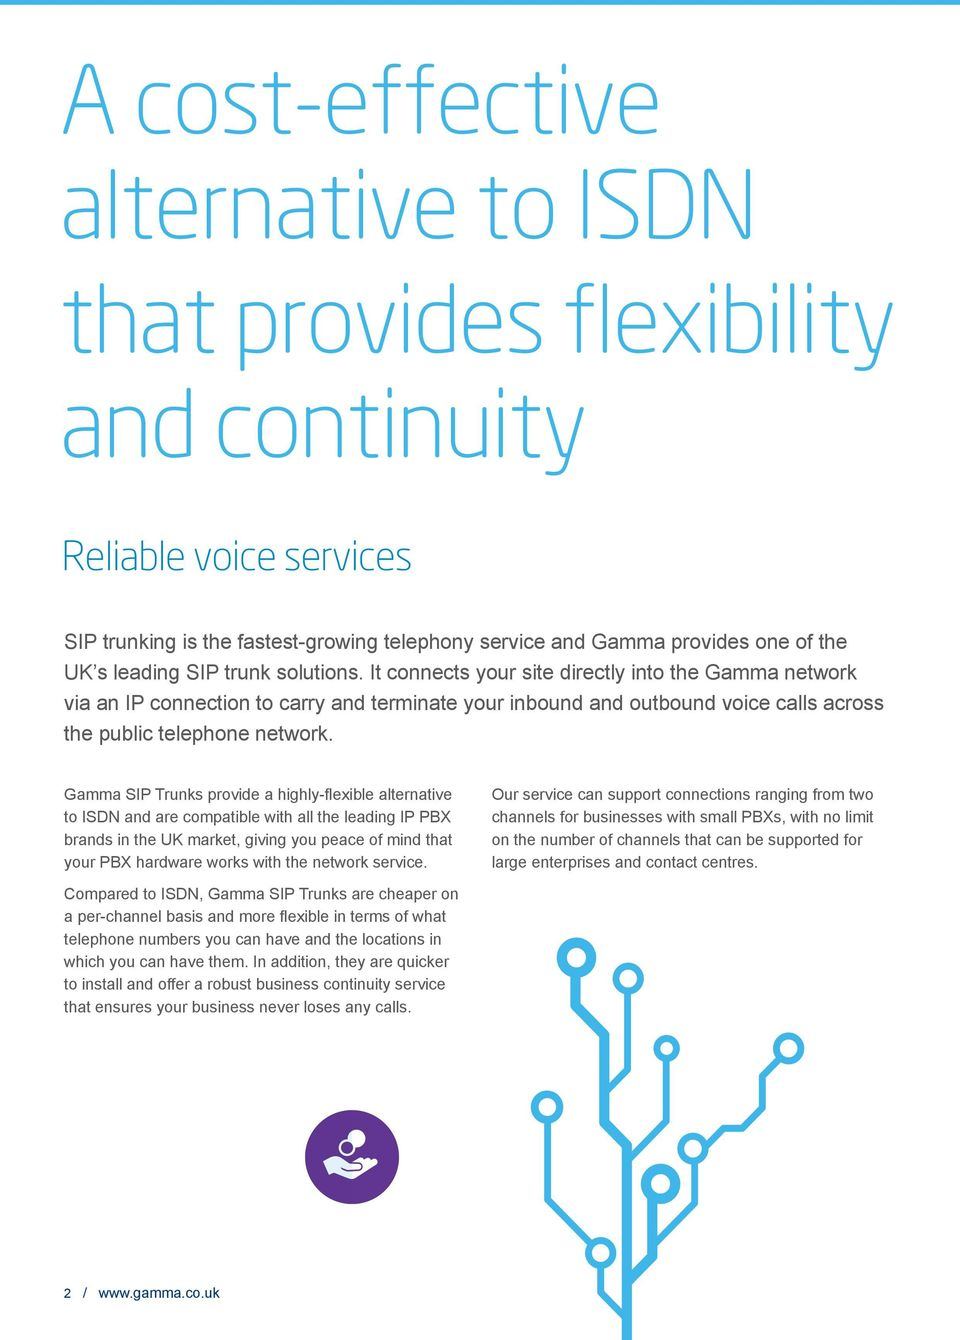 Gamma SIP Trunks provide a highly-flexible alternative to ISDN and are compatible with all the leading IP brands in the UK market, giving you peace of mind that your hardware works with the network